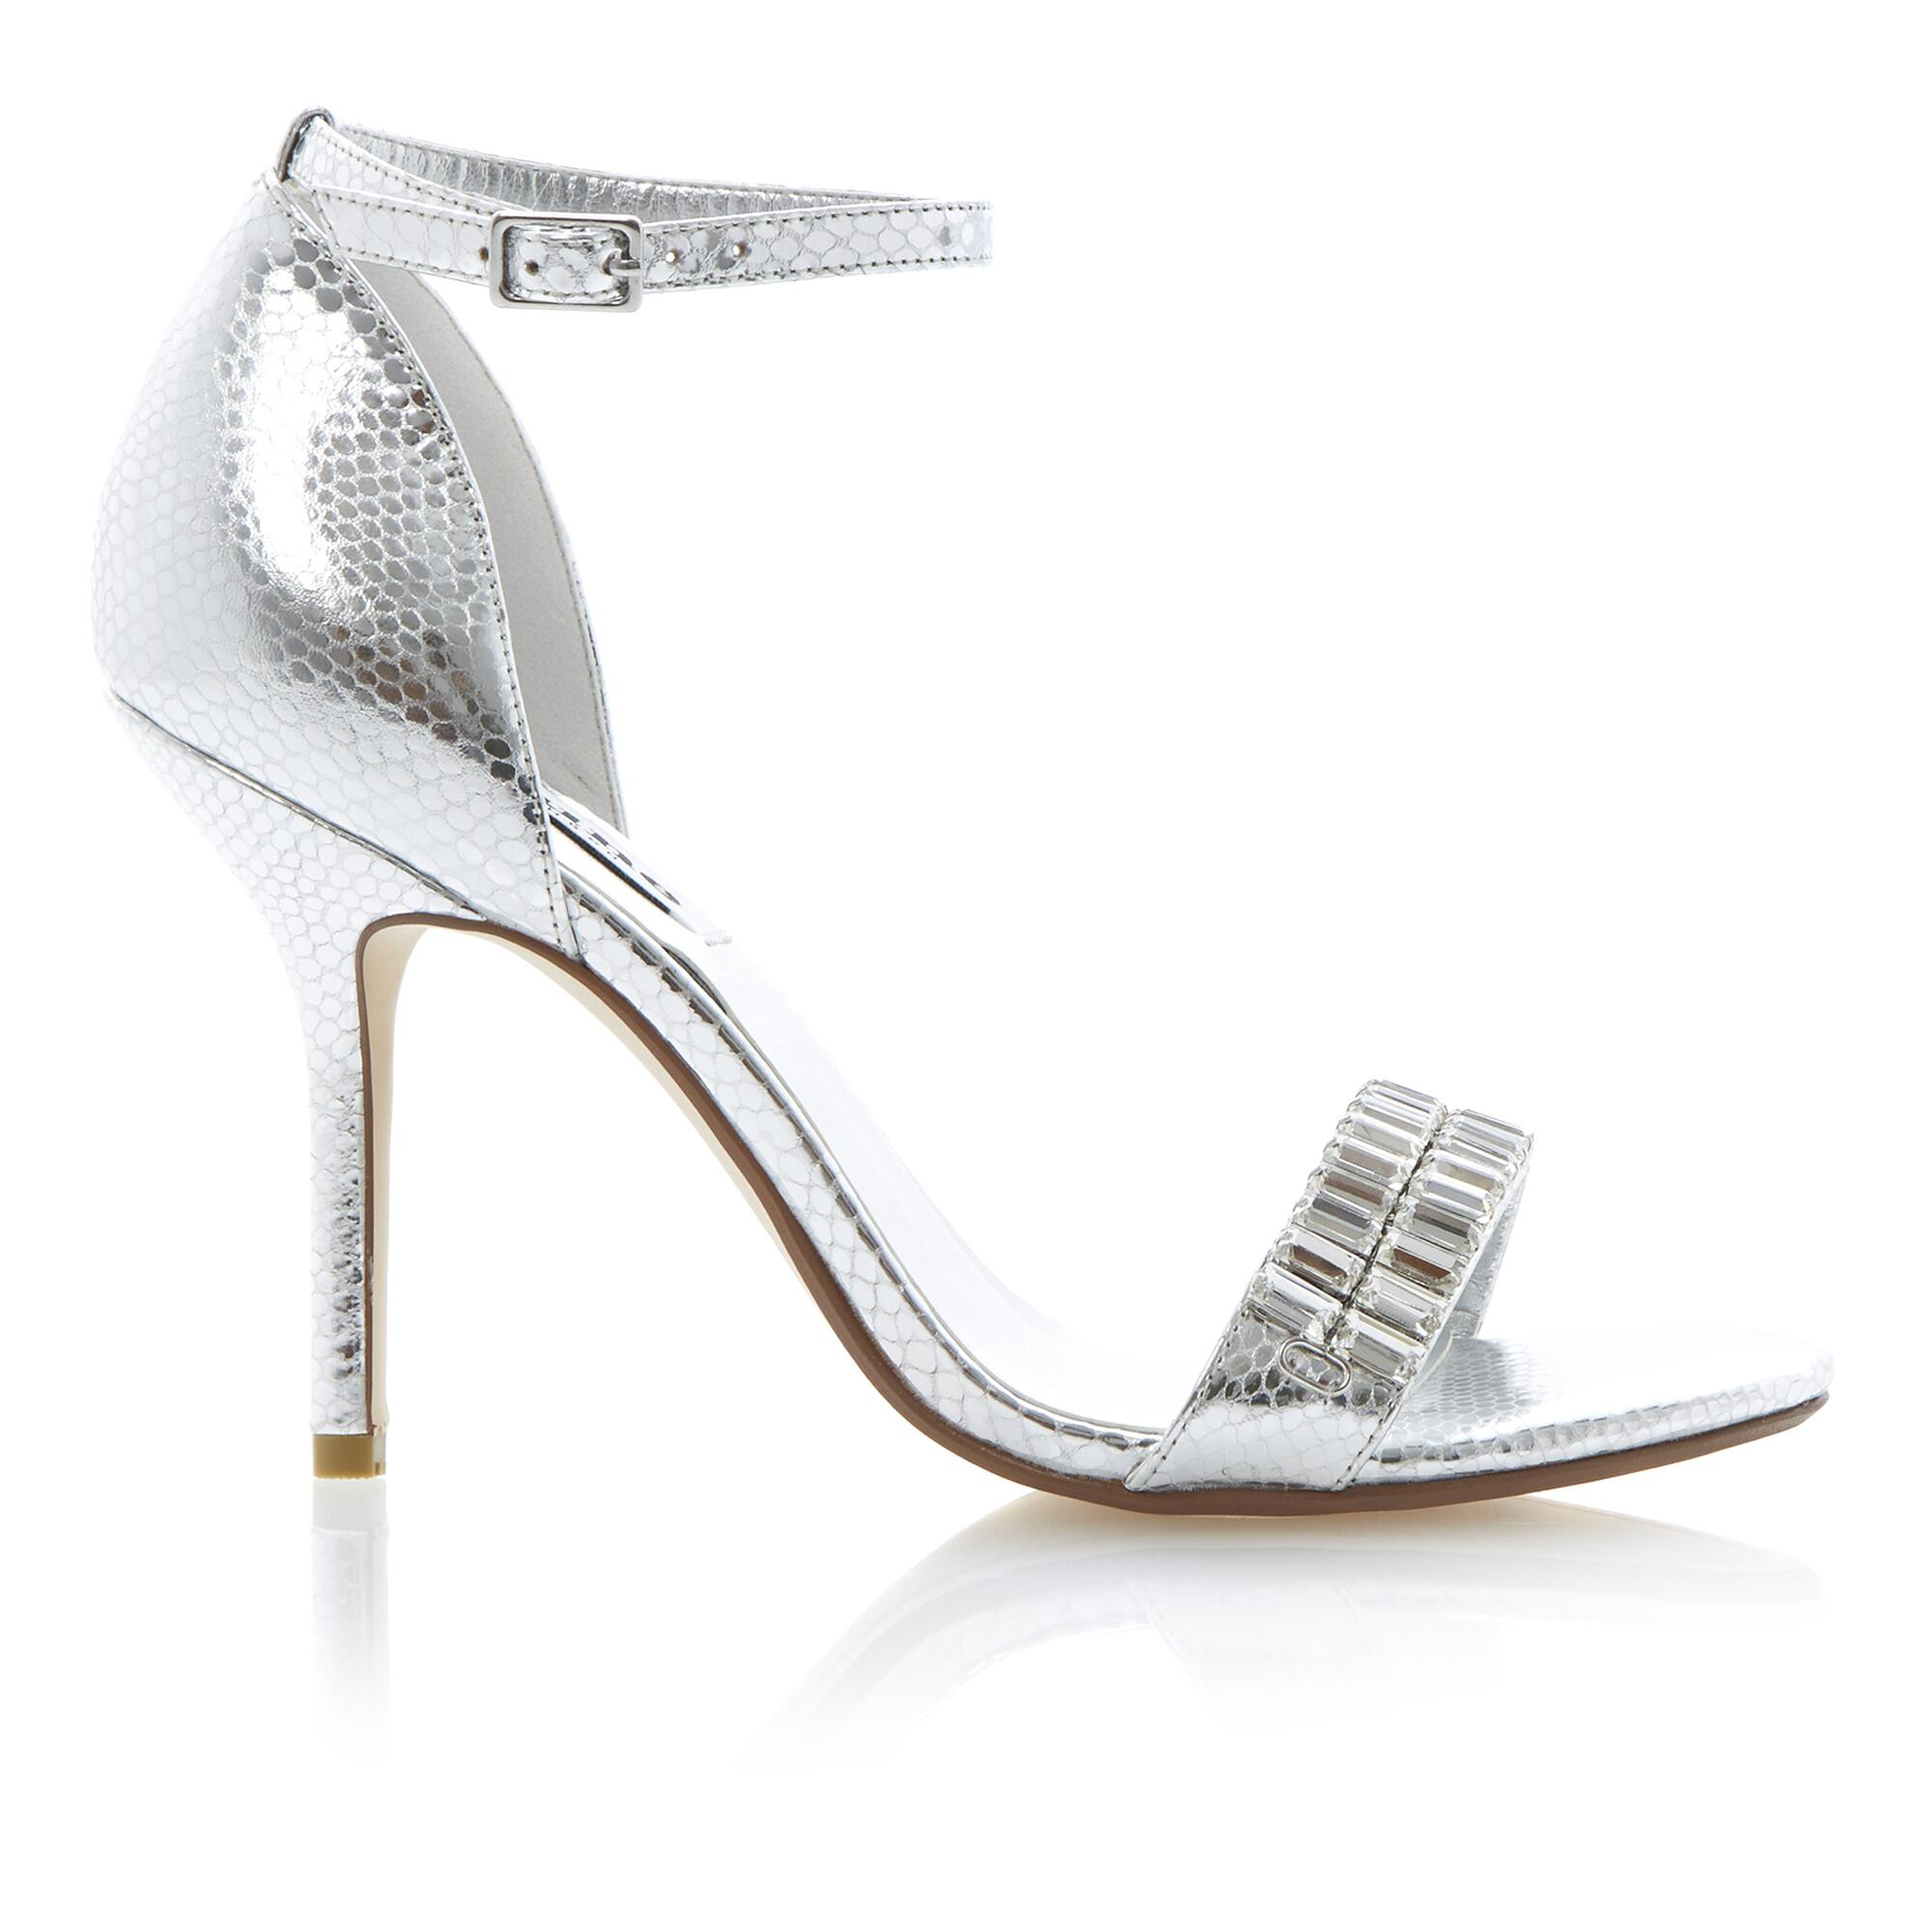 Today #Win a pair of silver heels!  RT & follow us & @Dune_Shoes to enter #tweetfortreats http://t.co/6KpDX9KIGr http://t.co/Ea8pYxsw4Y